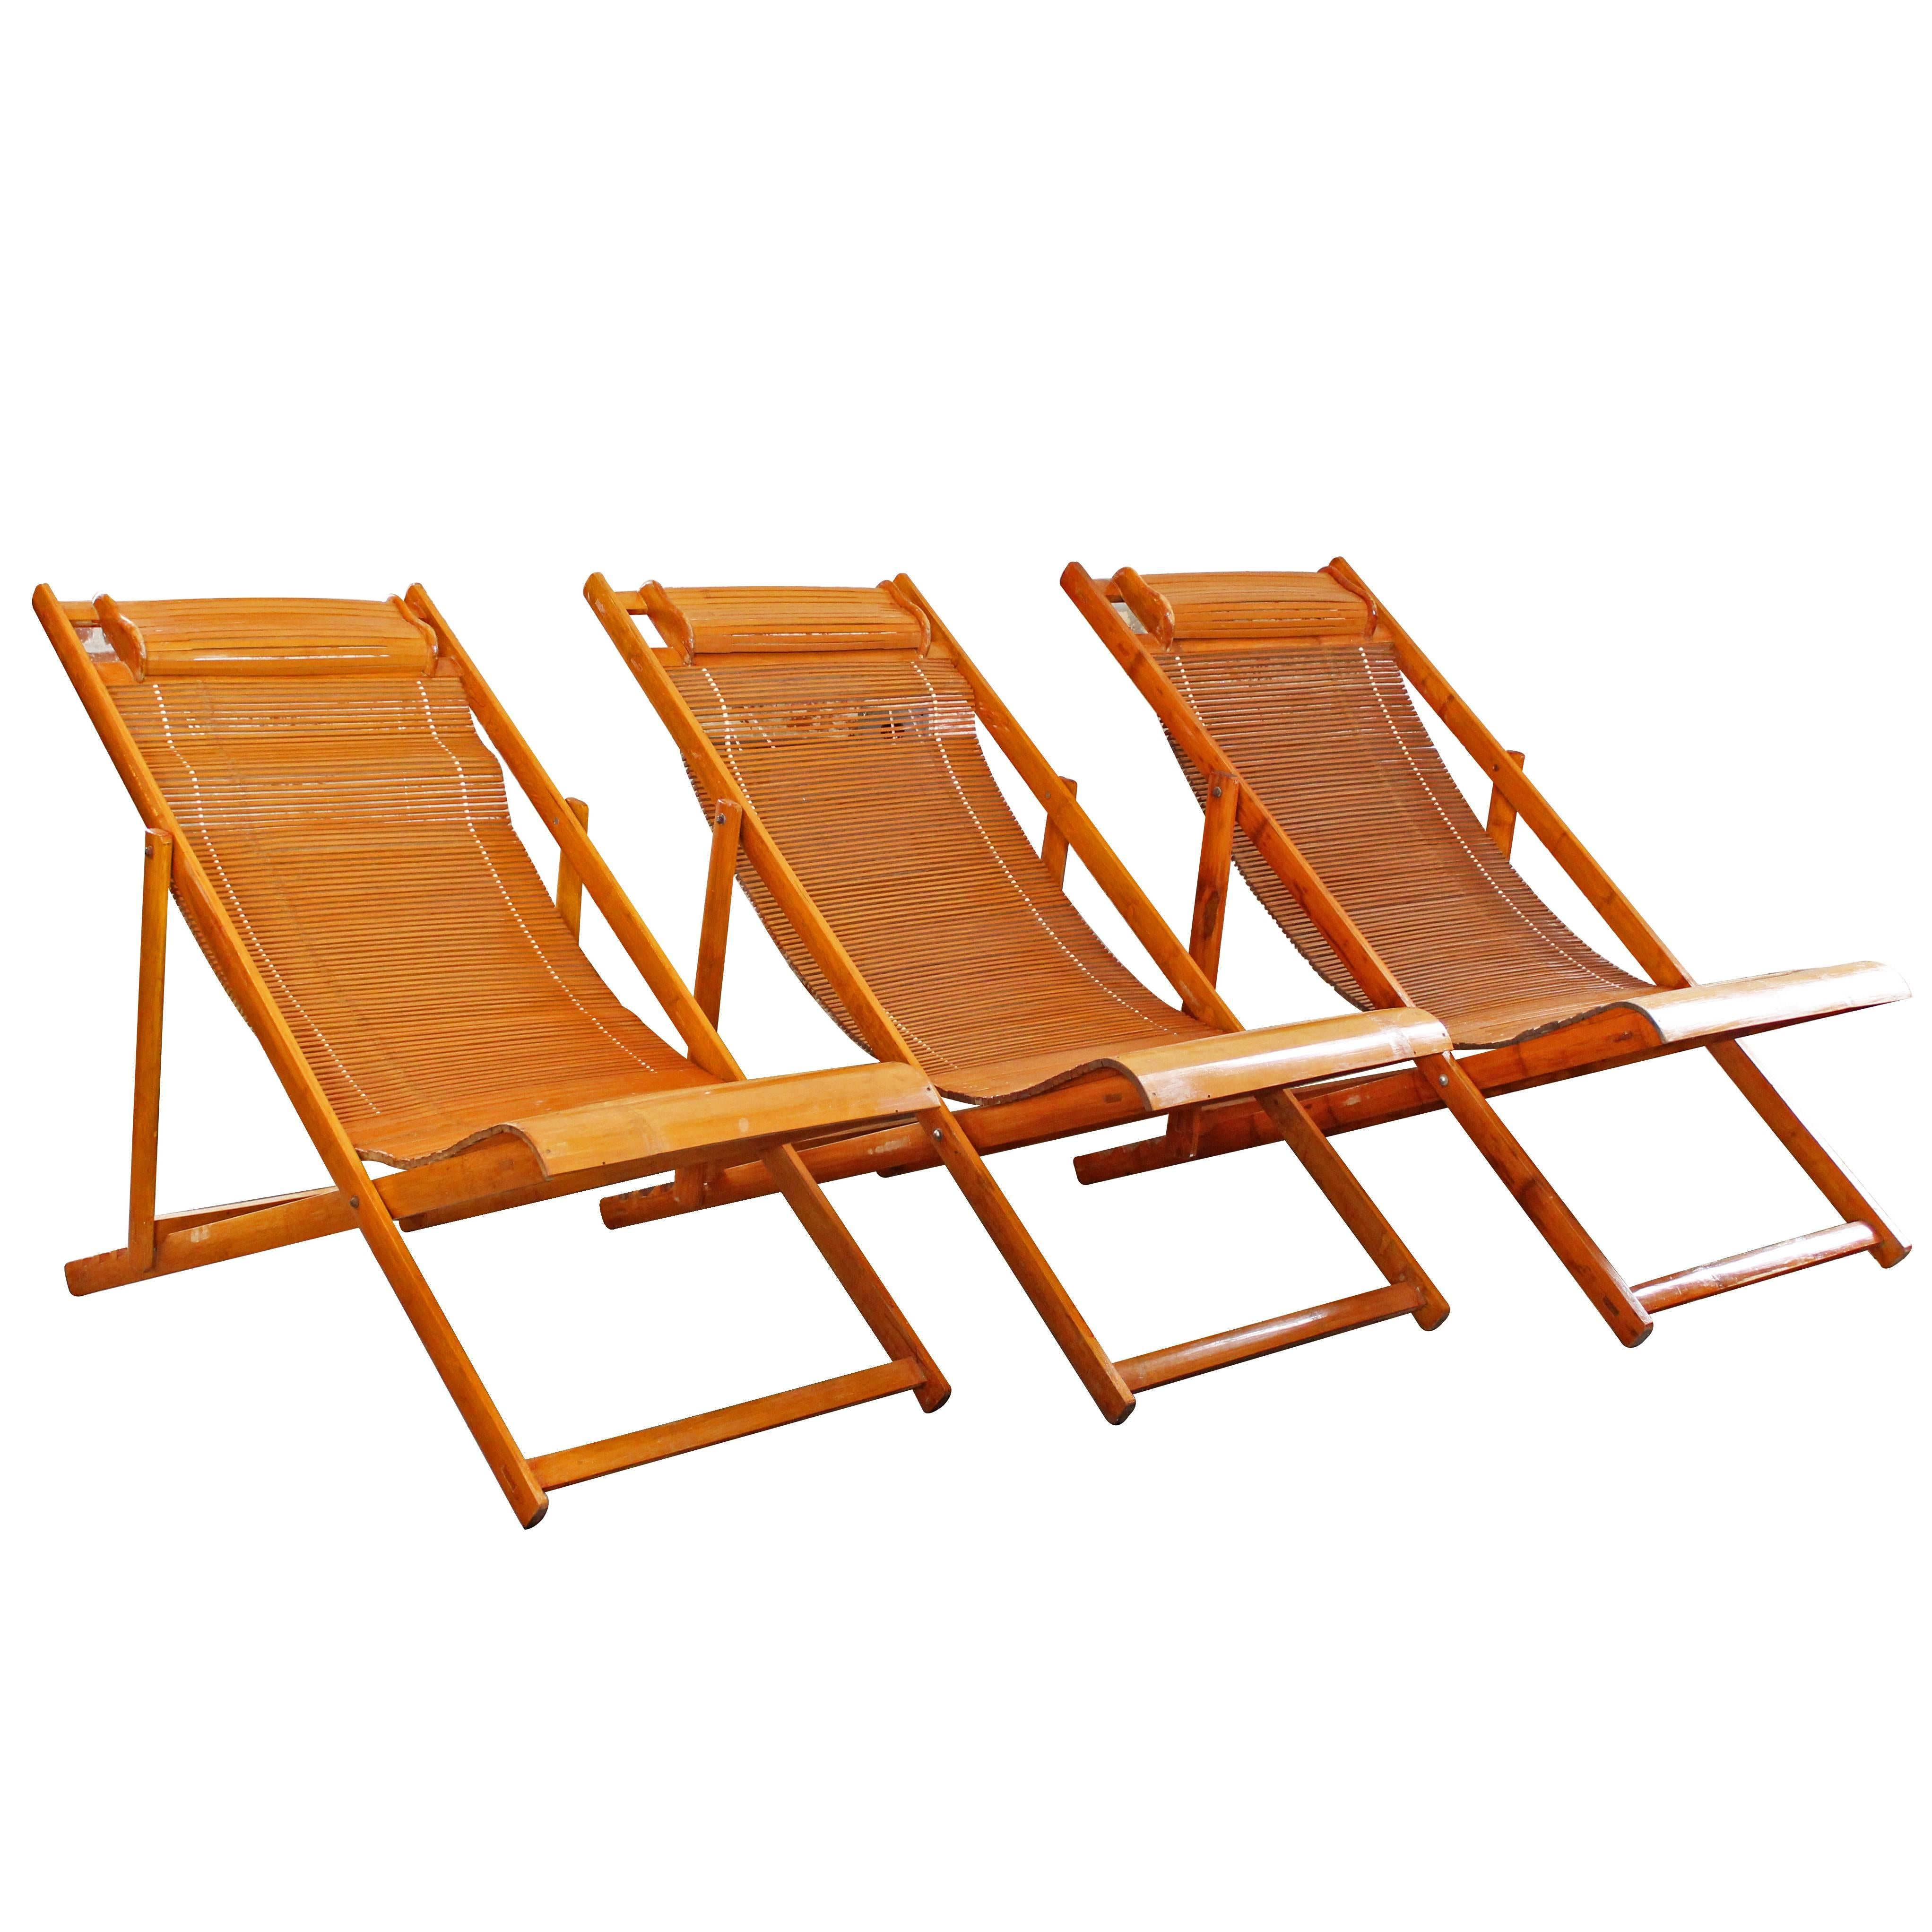 folding chairs outdoor use cheap patio lounge vintage bamboo loungers wood japanese deck fold up for sale at 1stdibs